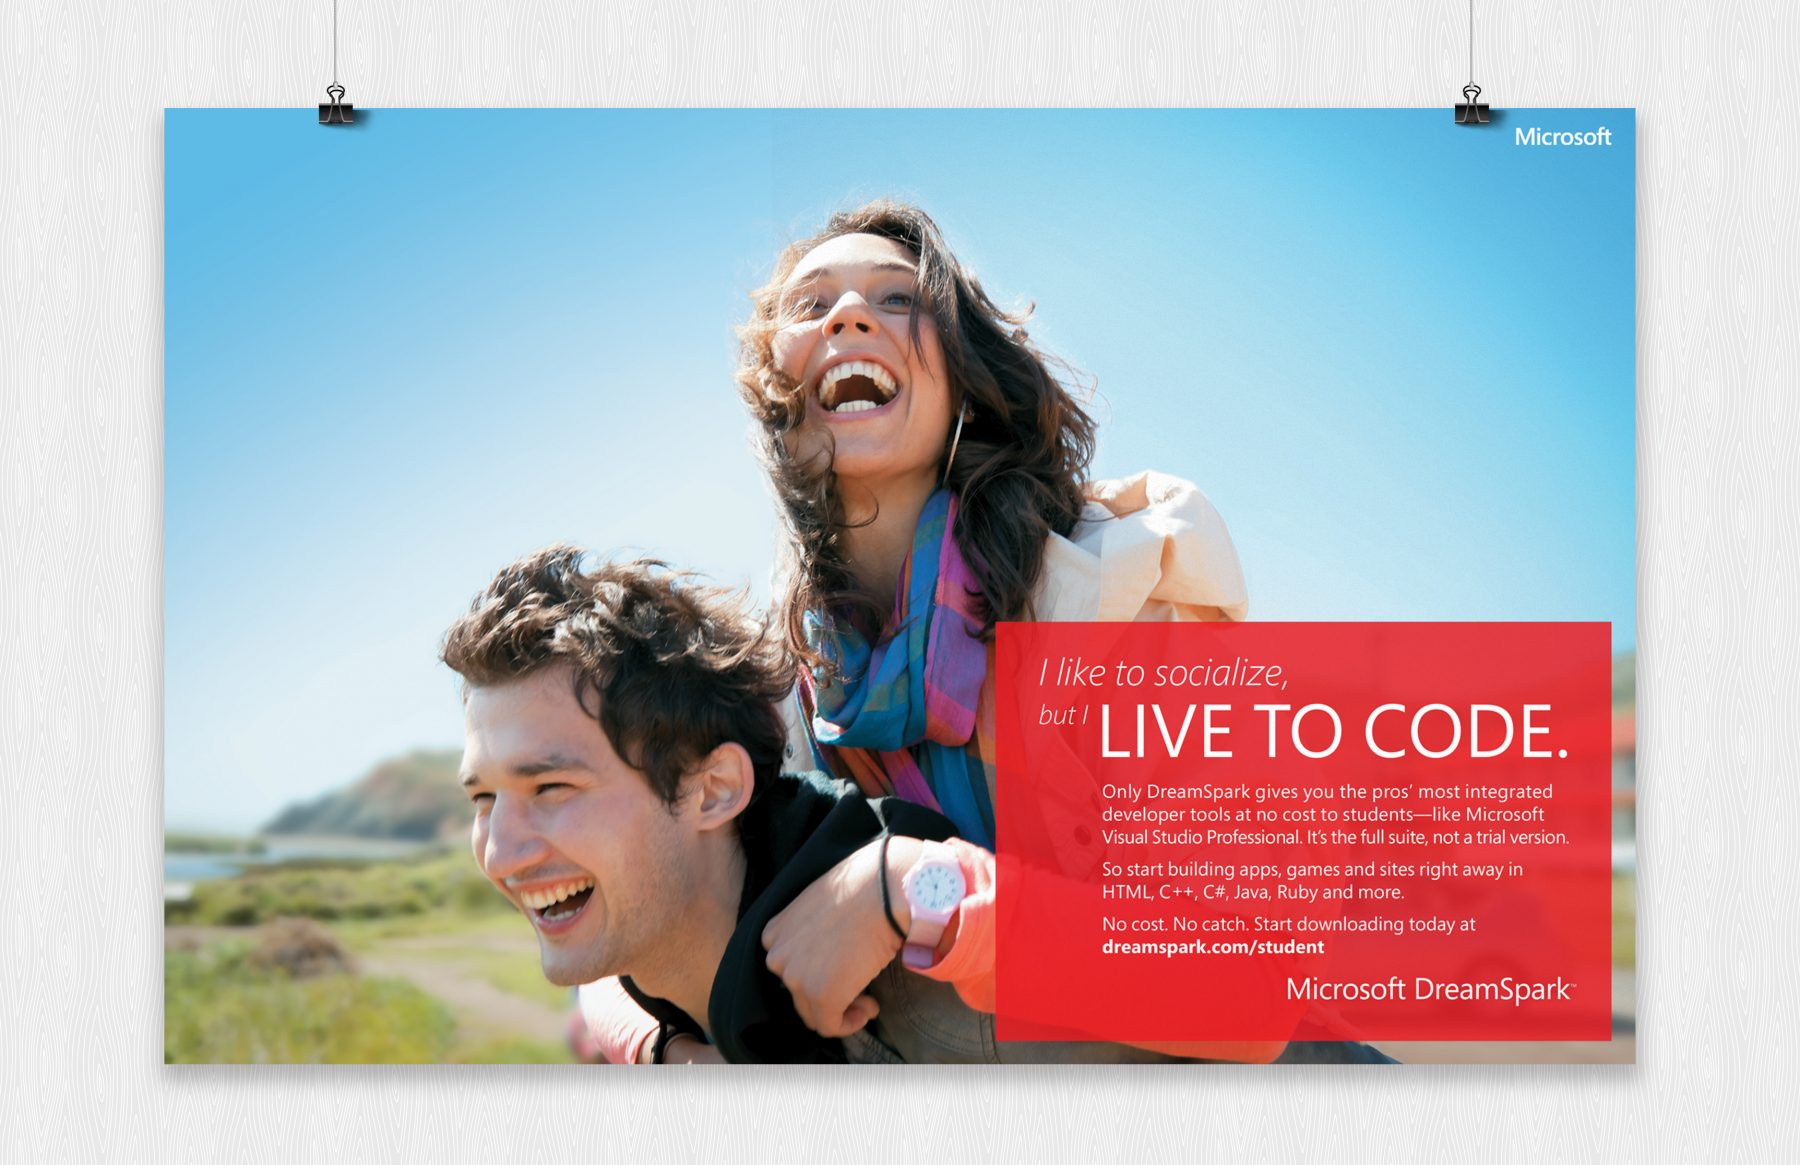 microsoft live to code poster social